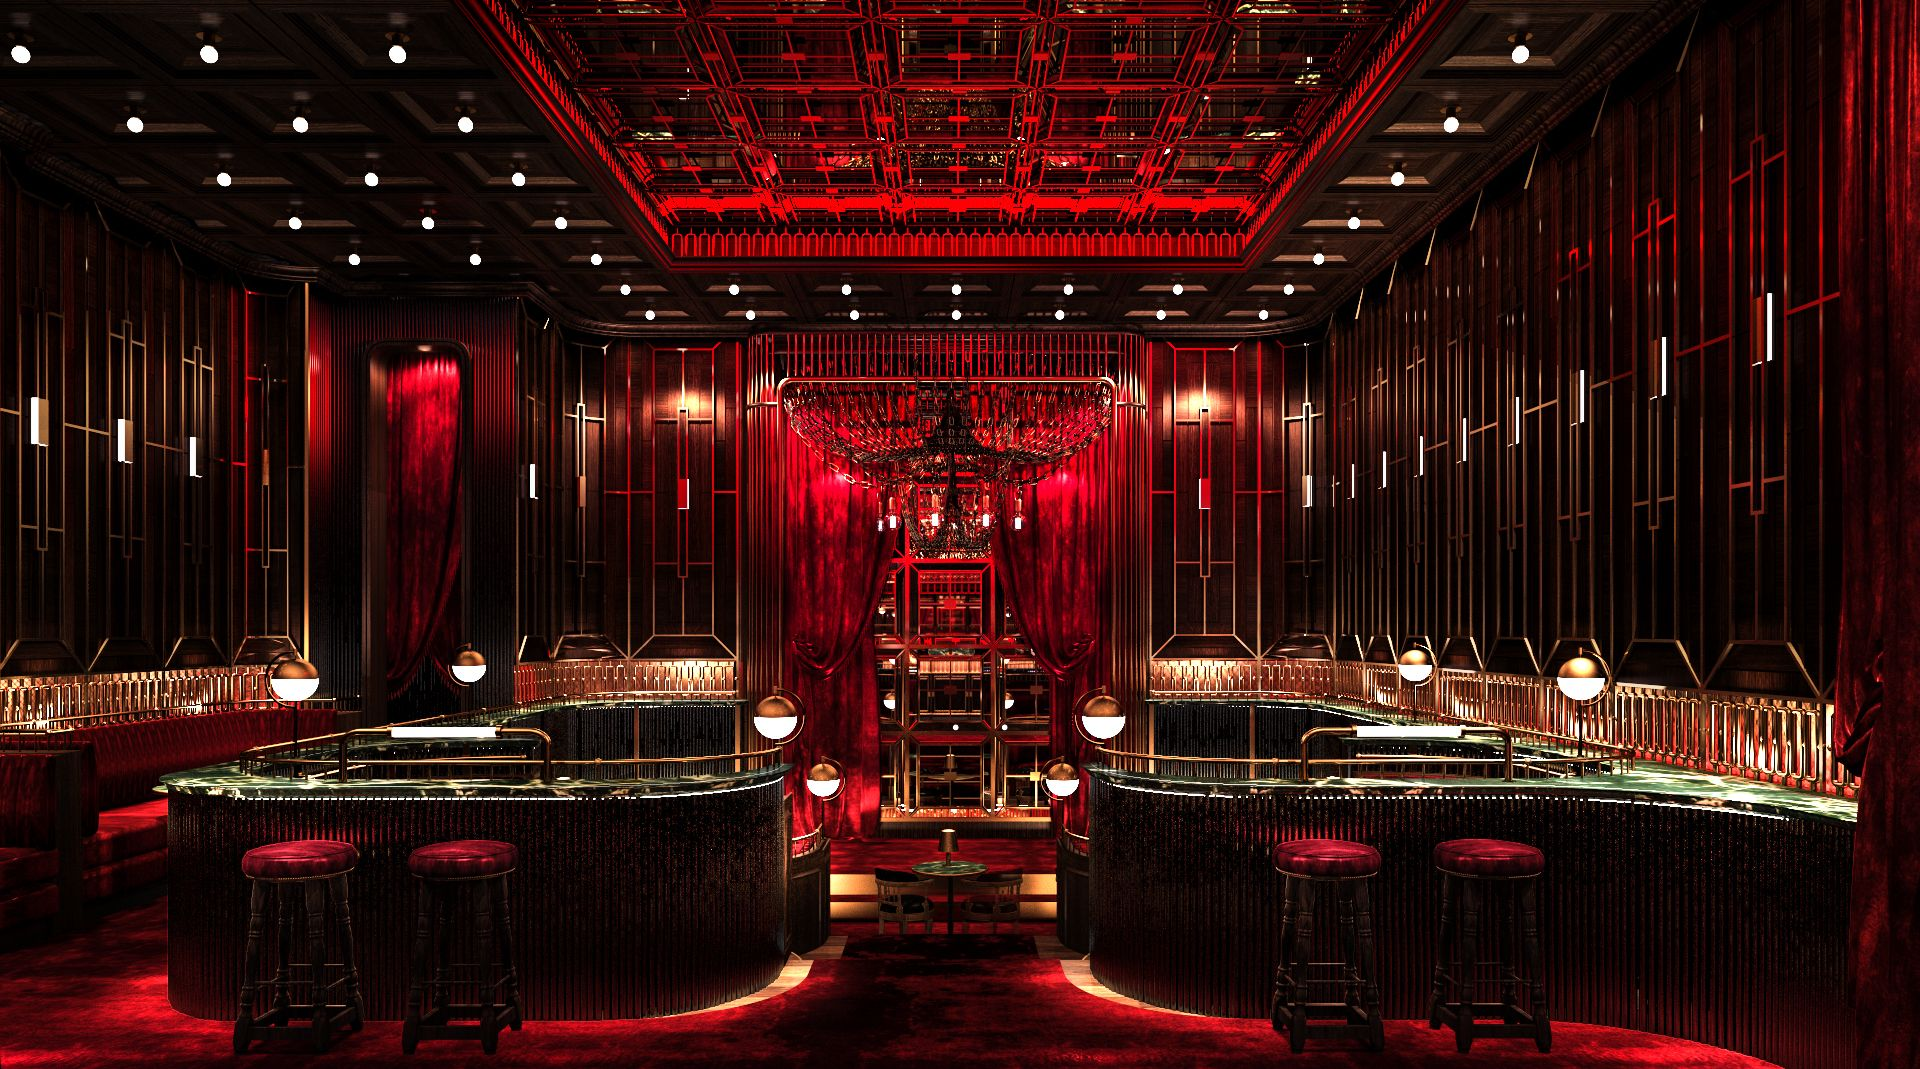 Bask In The Glamour Of The Roaring '20s At Crimson Room